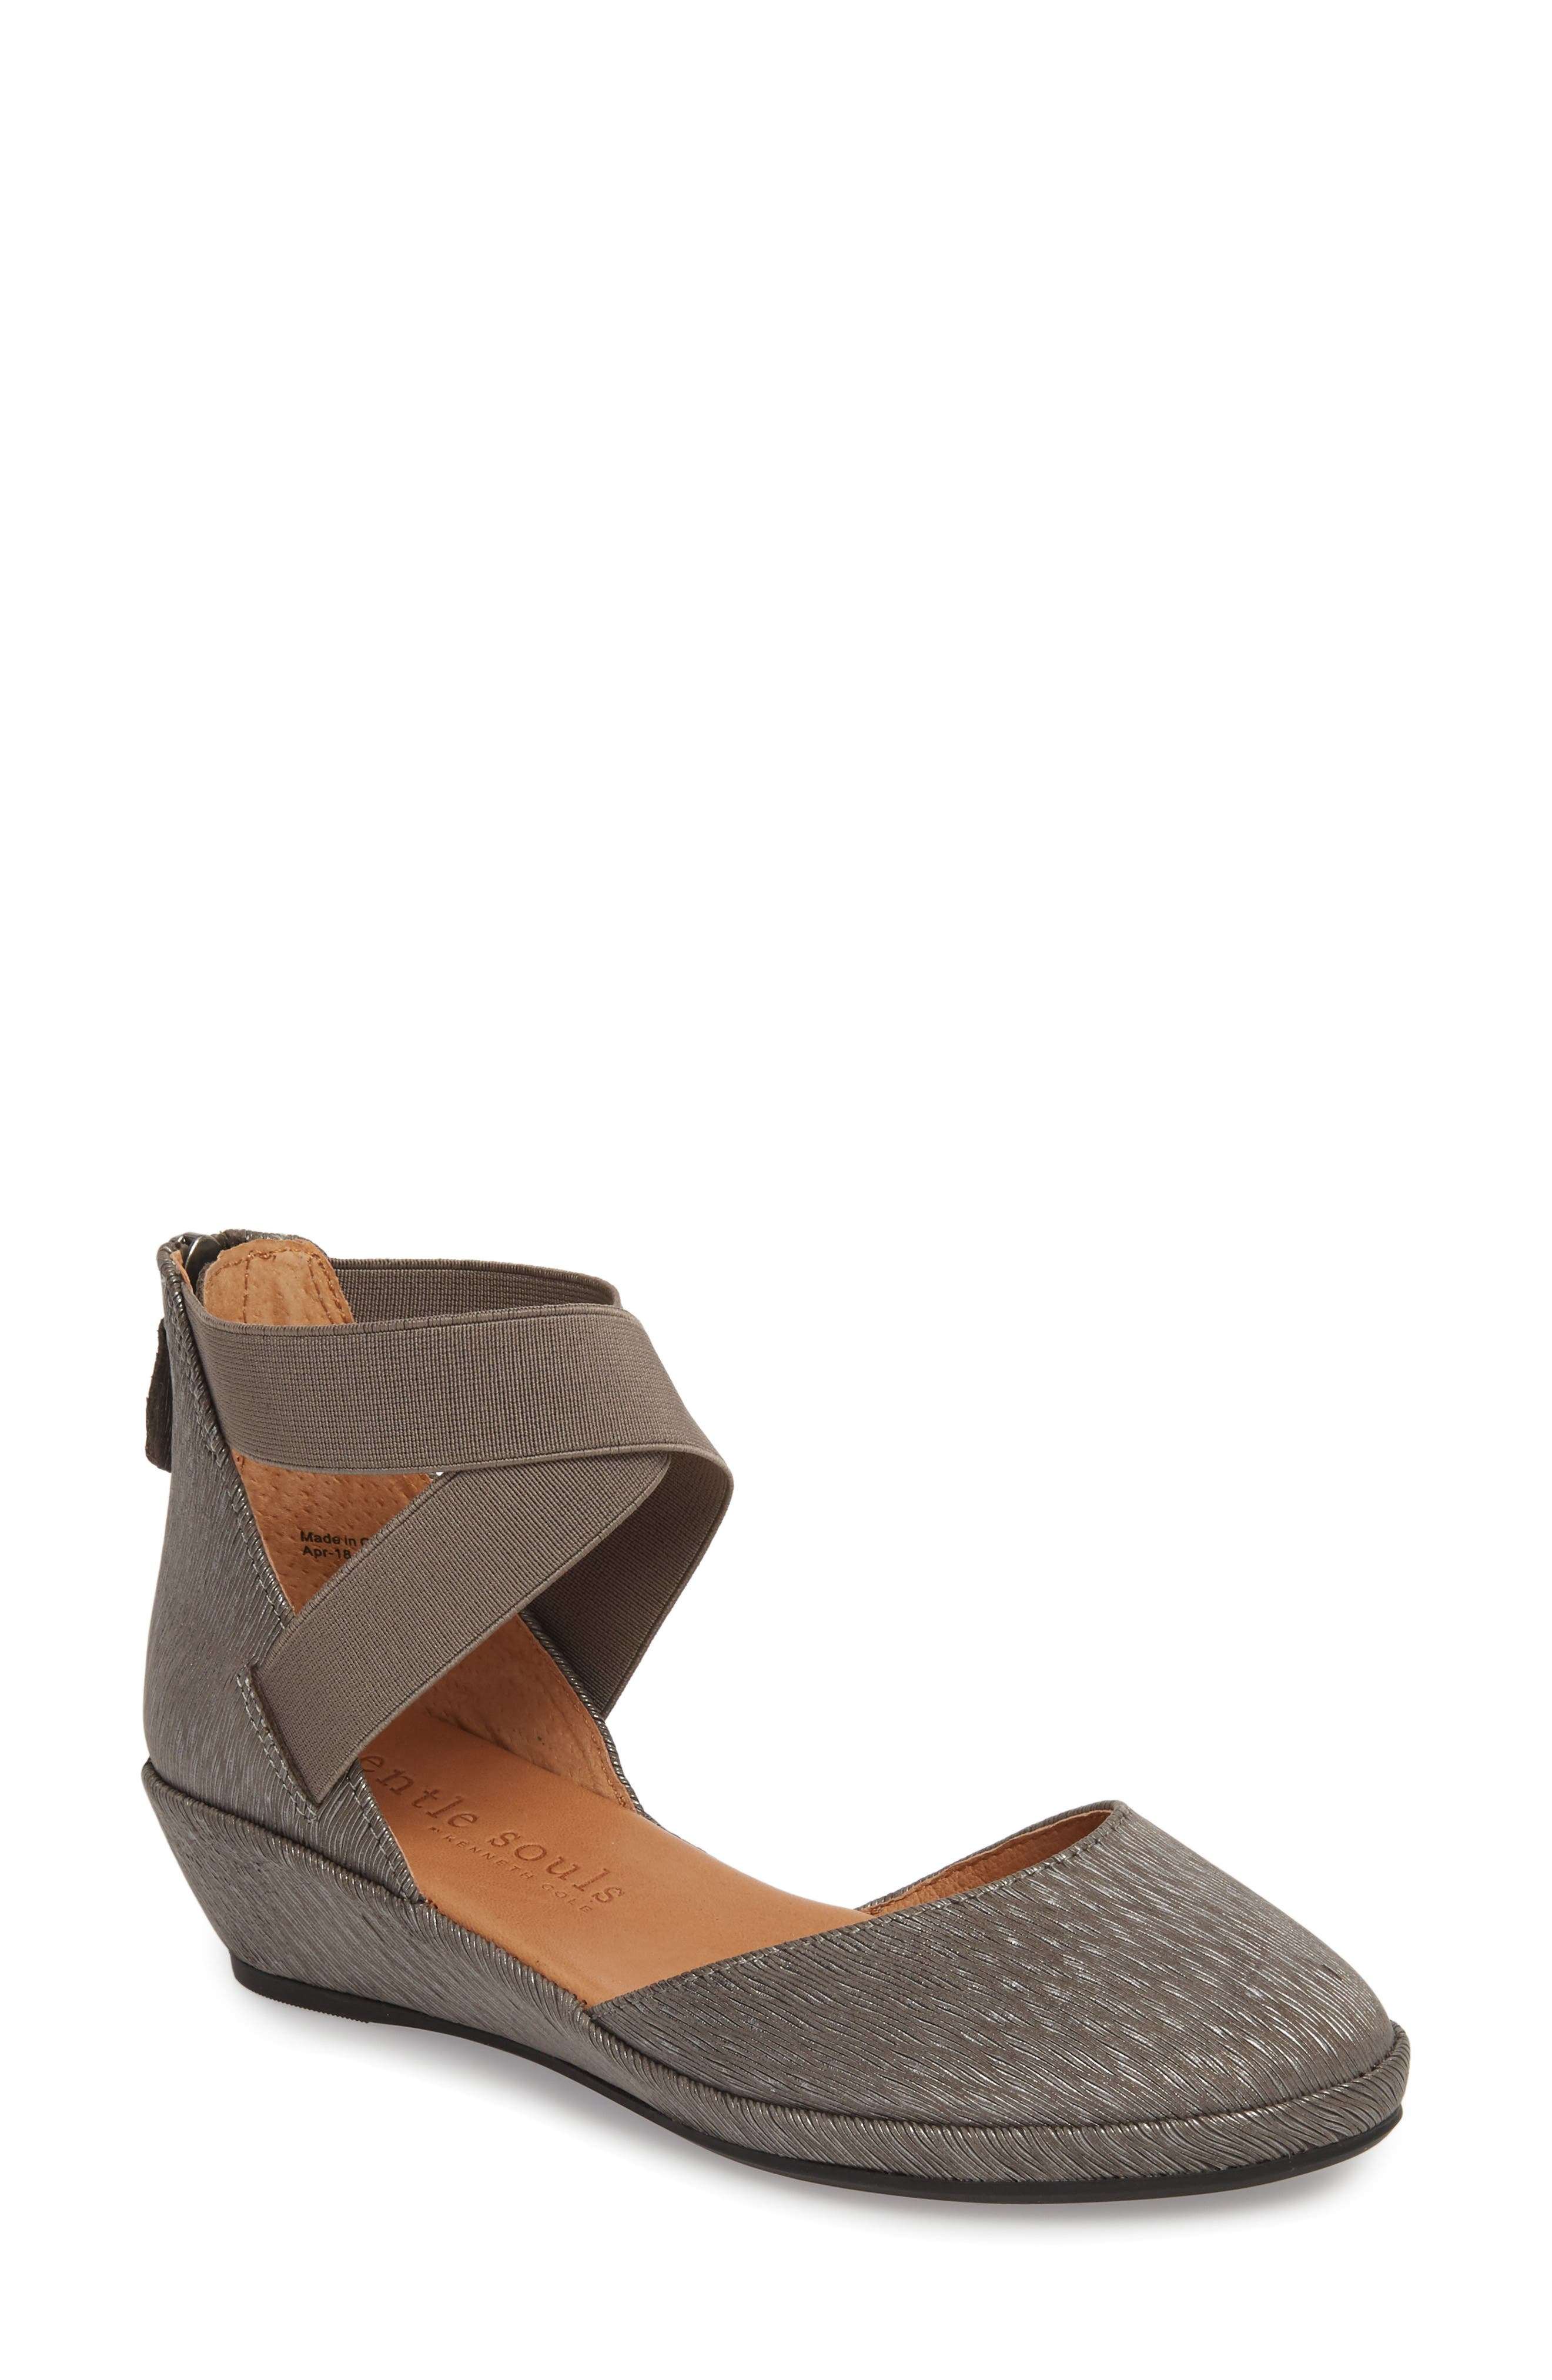 by Kenneth Cole 'Noa' Elastic Strap d'Orsay Sandal,                             Main thumbnail 1, color,                             Ash Embossed Leather